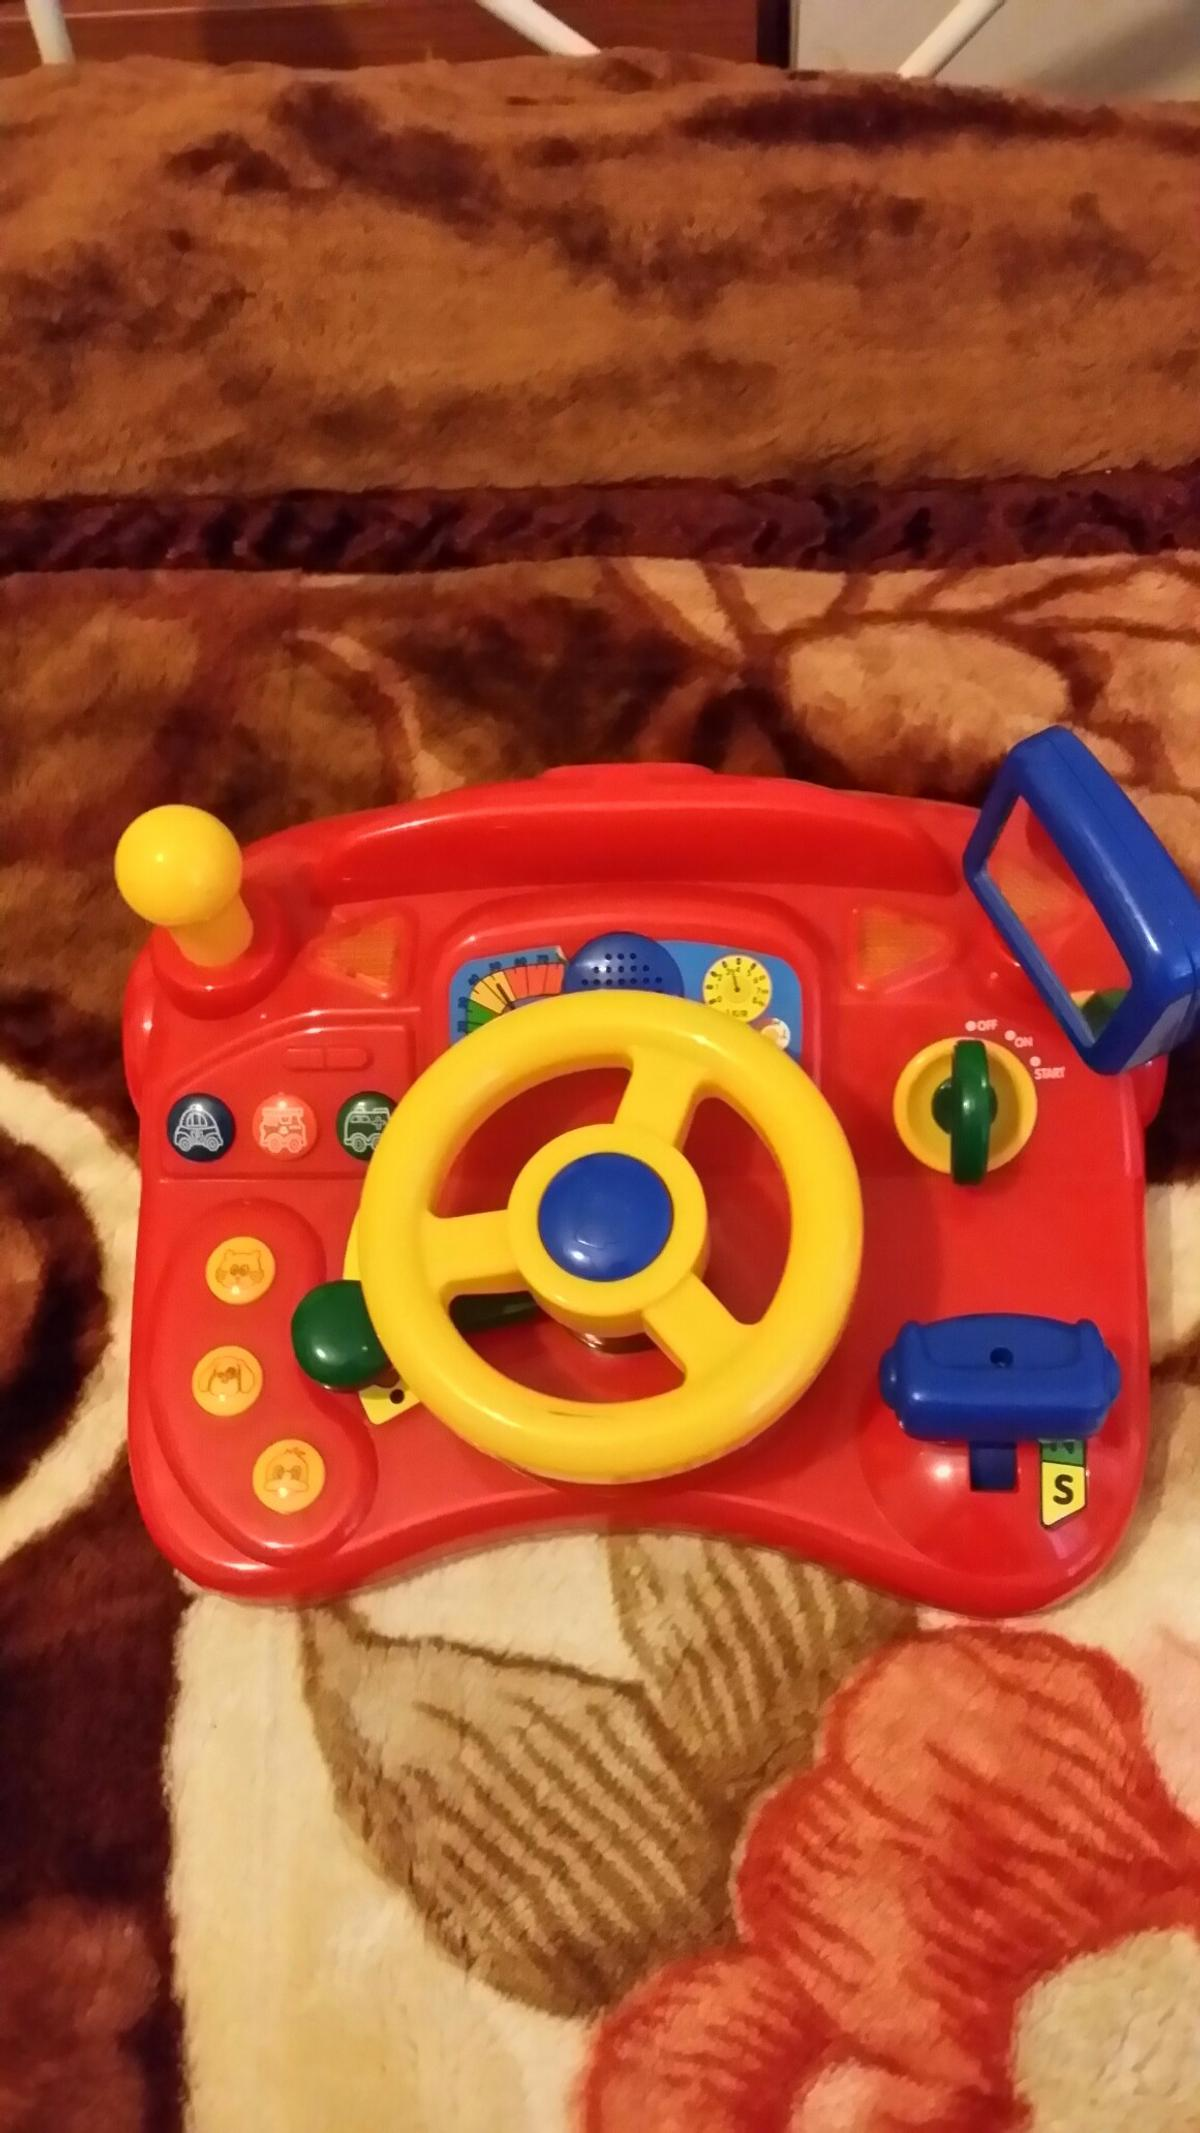 Car toy for kids with car horn and starting